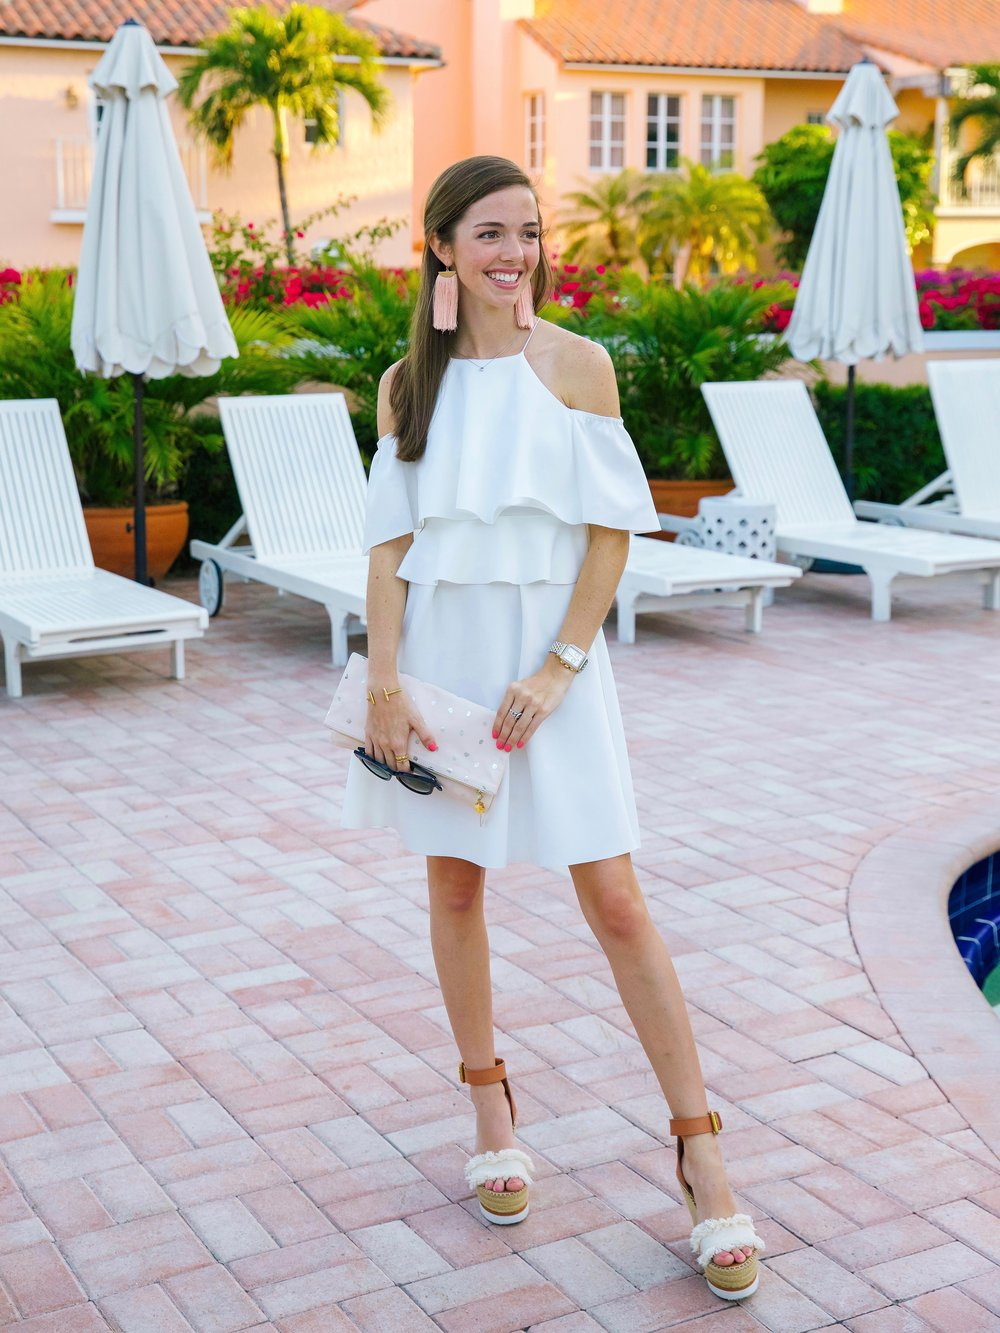 LCB STYLE FASHION BLOGGER COLONY HOTEL PALM BEACH-4.jpg